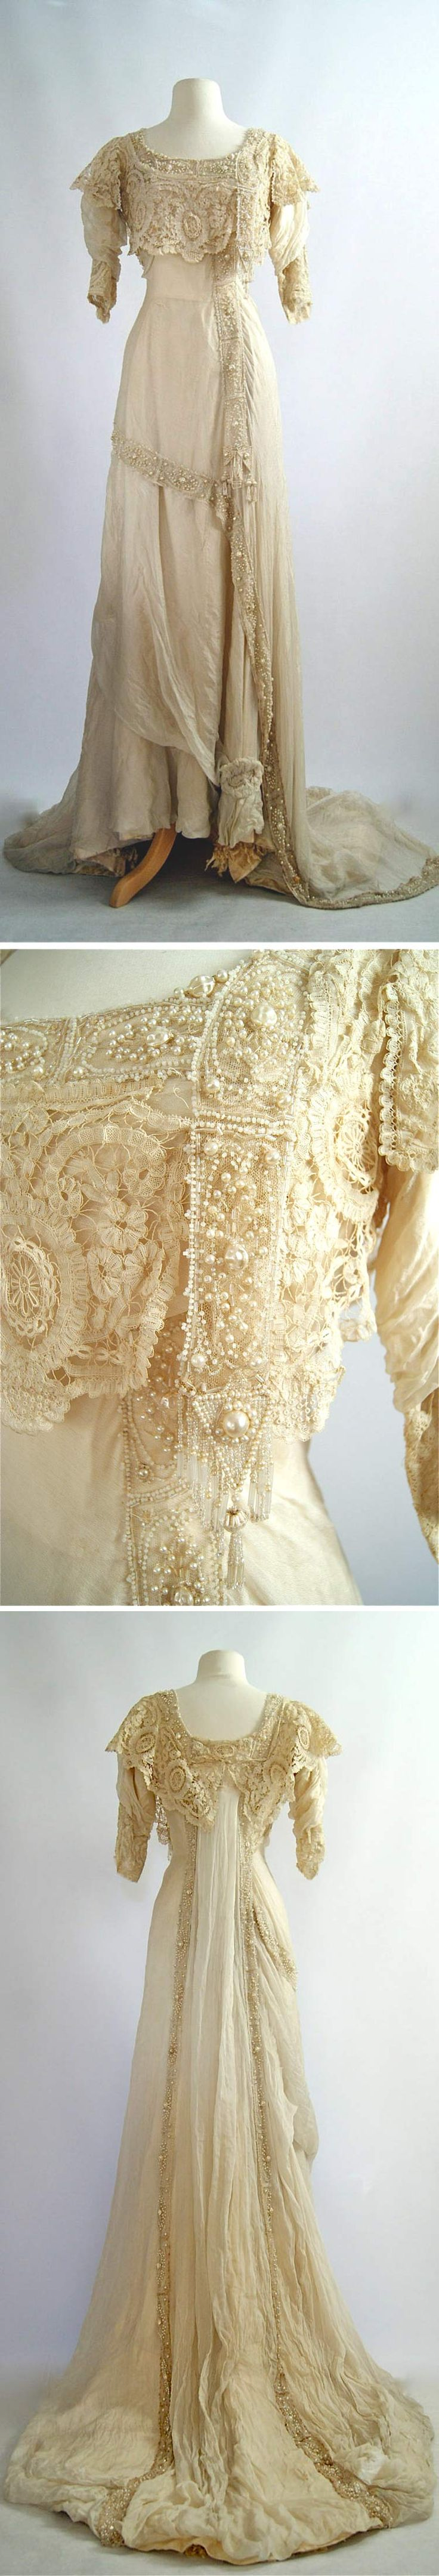 """Evening gown ca. 1900s. Silk. Scoop neck trimmed with lace & beading around collar. Lace cascades down left side. Beading down left side & across lower waistline that leads to 2 panels in back with detailed beading. Front is 24"""" higher than back. Sleeves are 3/4 length & slightly gathered with lace at cuffs. Boned bodice plus built-in corset"""